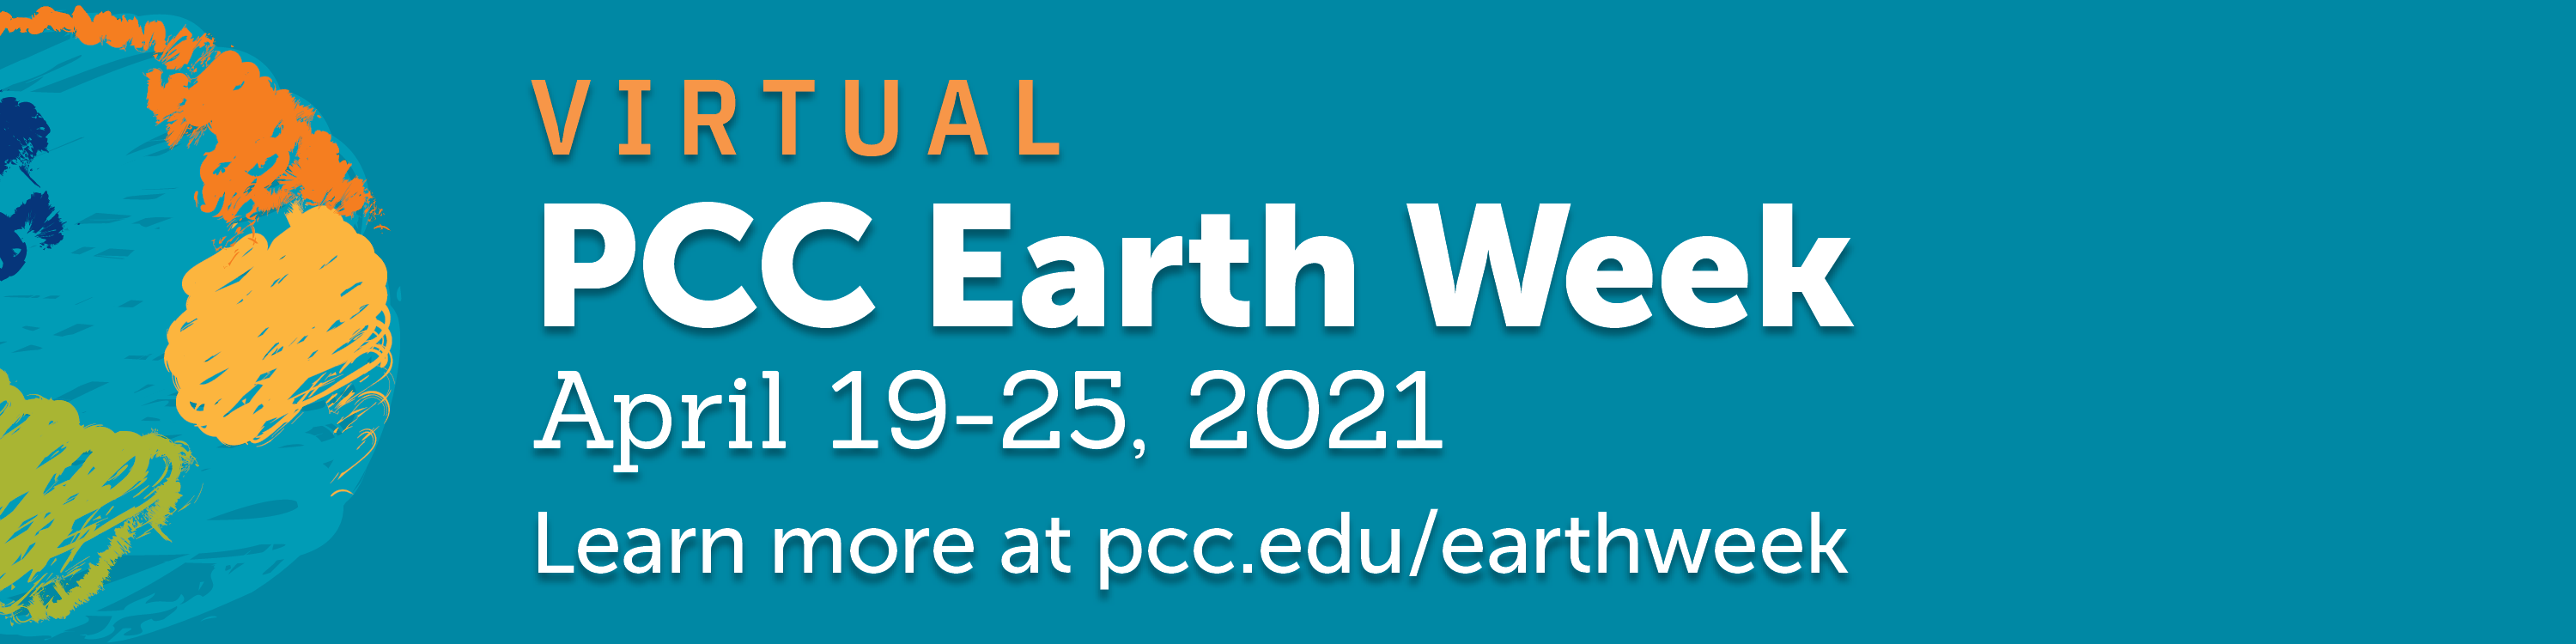 PCC's Virtual Earth Week from April 19th-15th. Click here to visit Earth Week webpage.